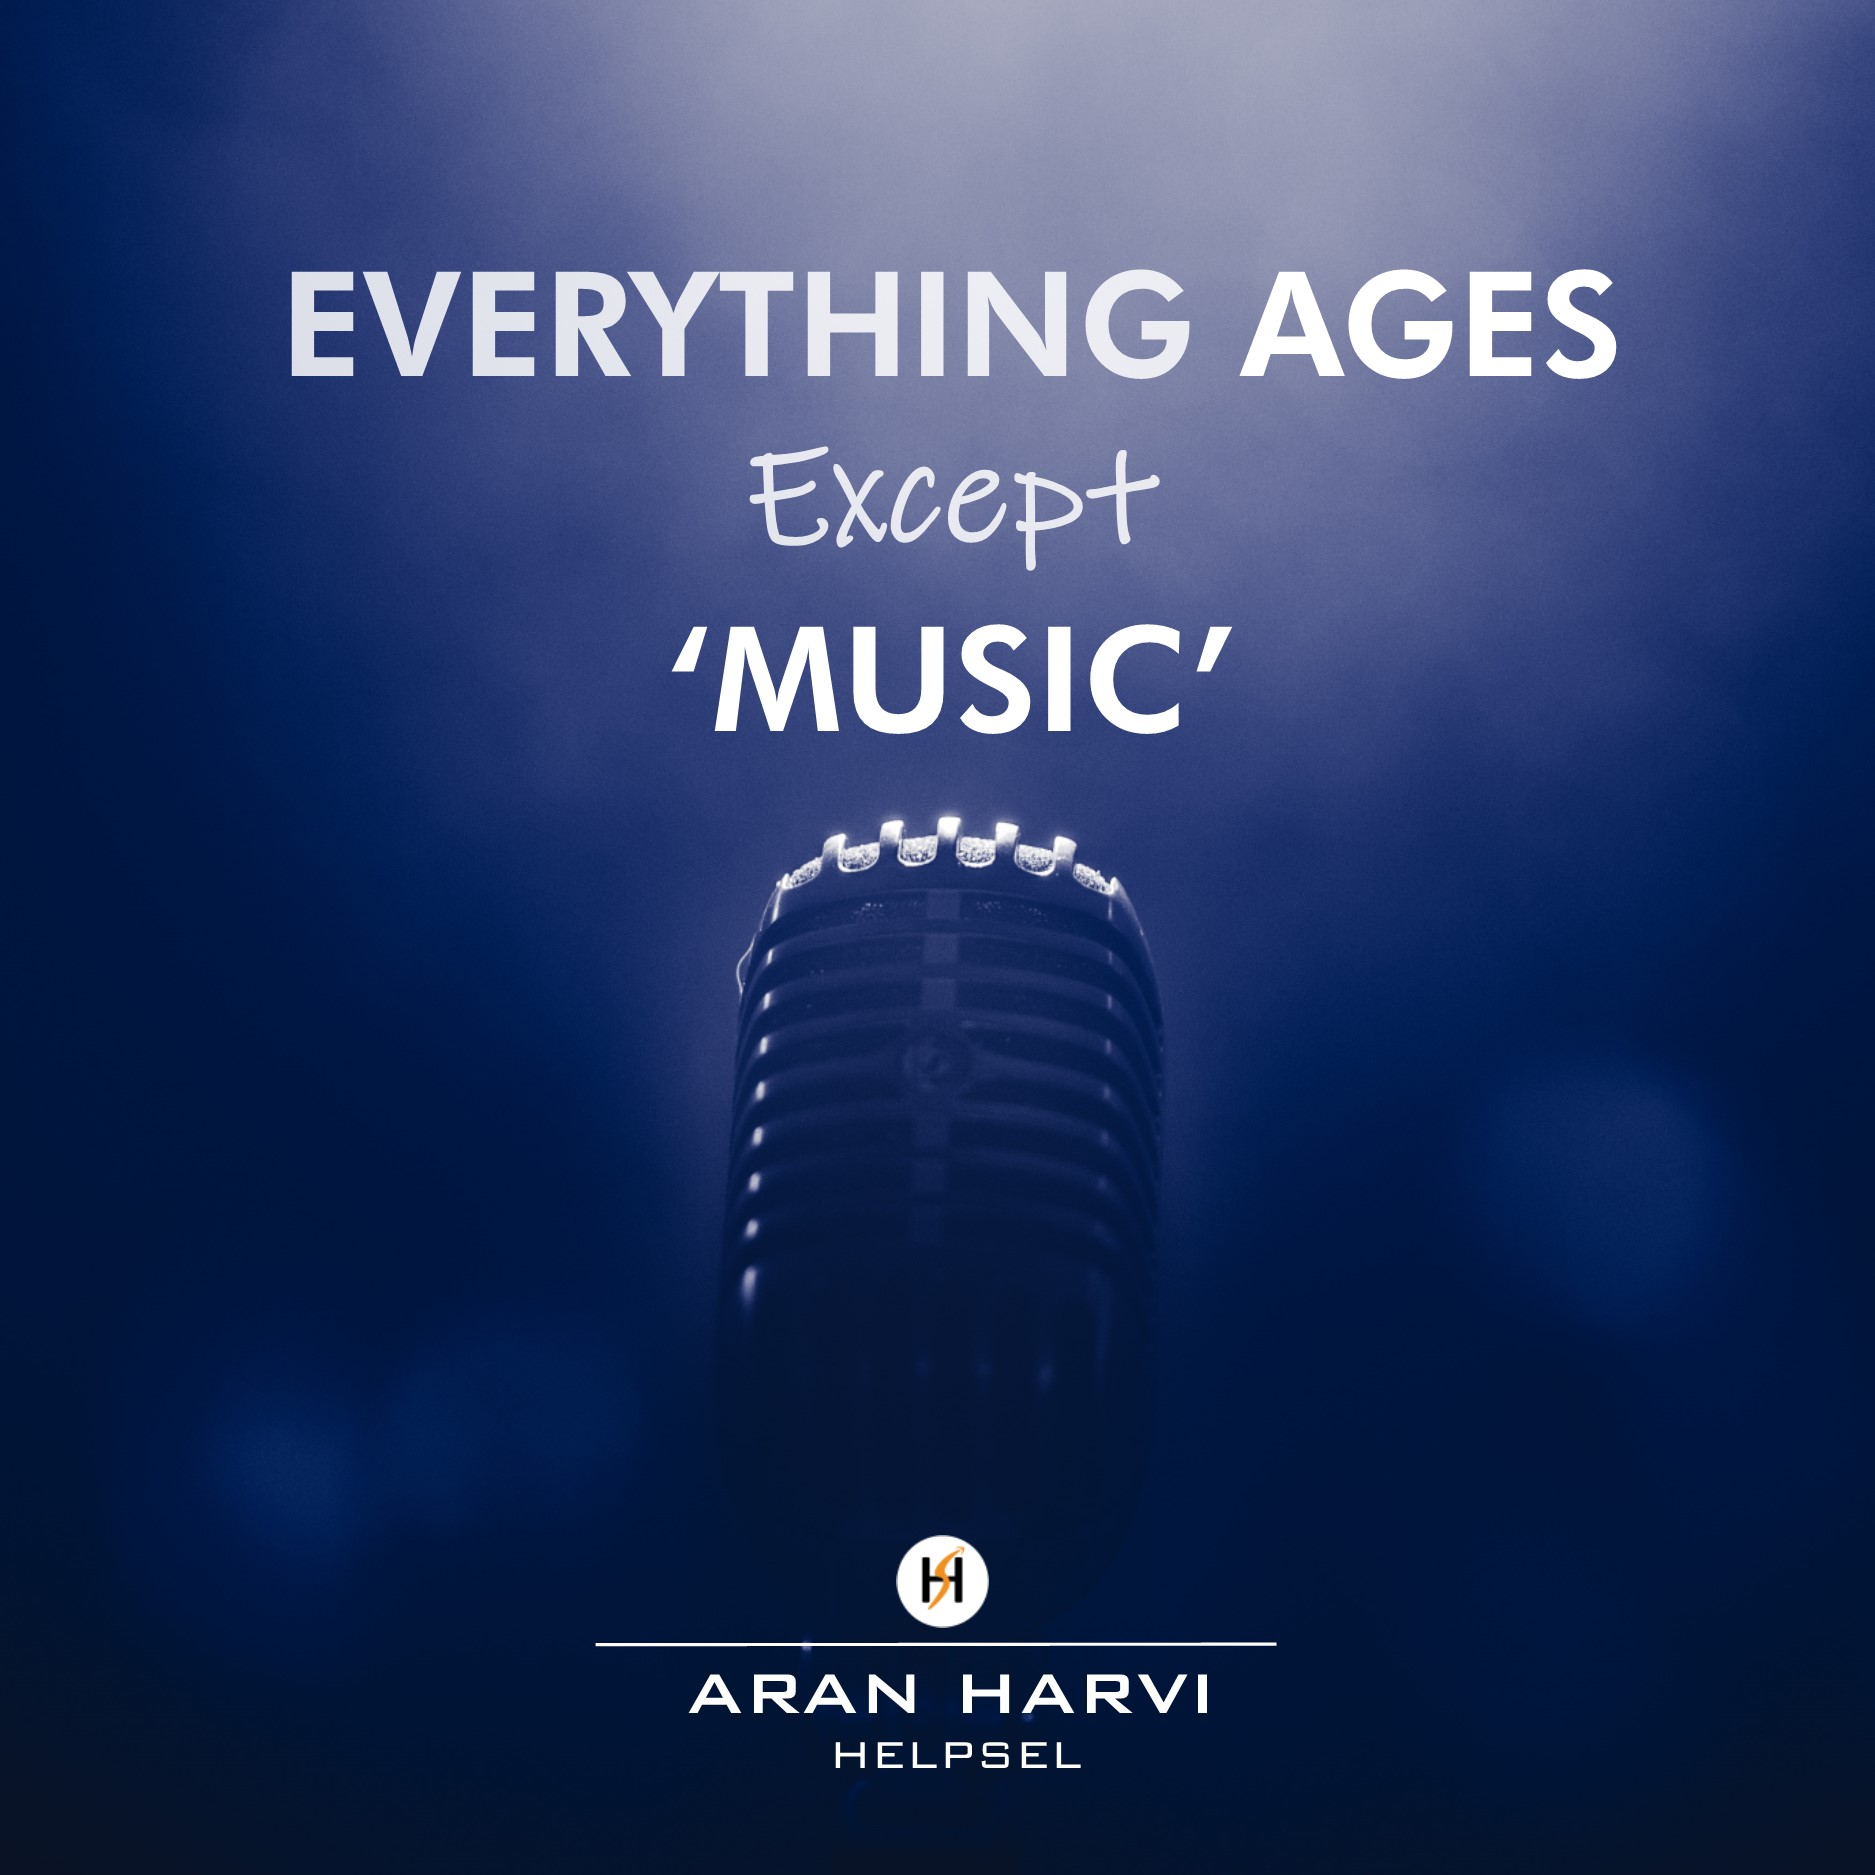 """Everthing Ages Except Music"" – Aran Harvi [OC][960×960]"